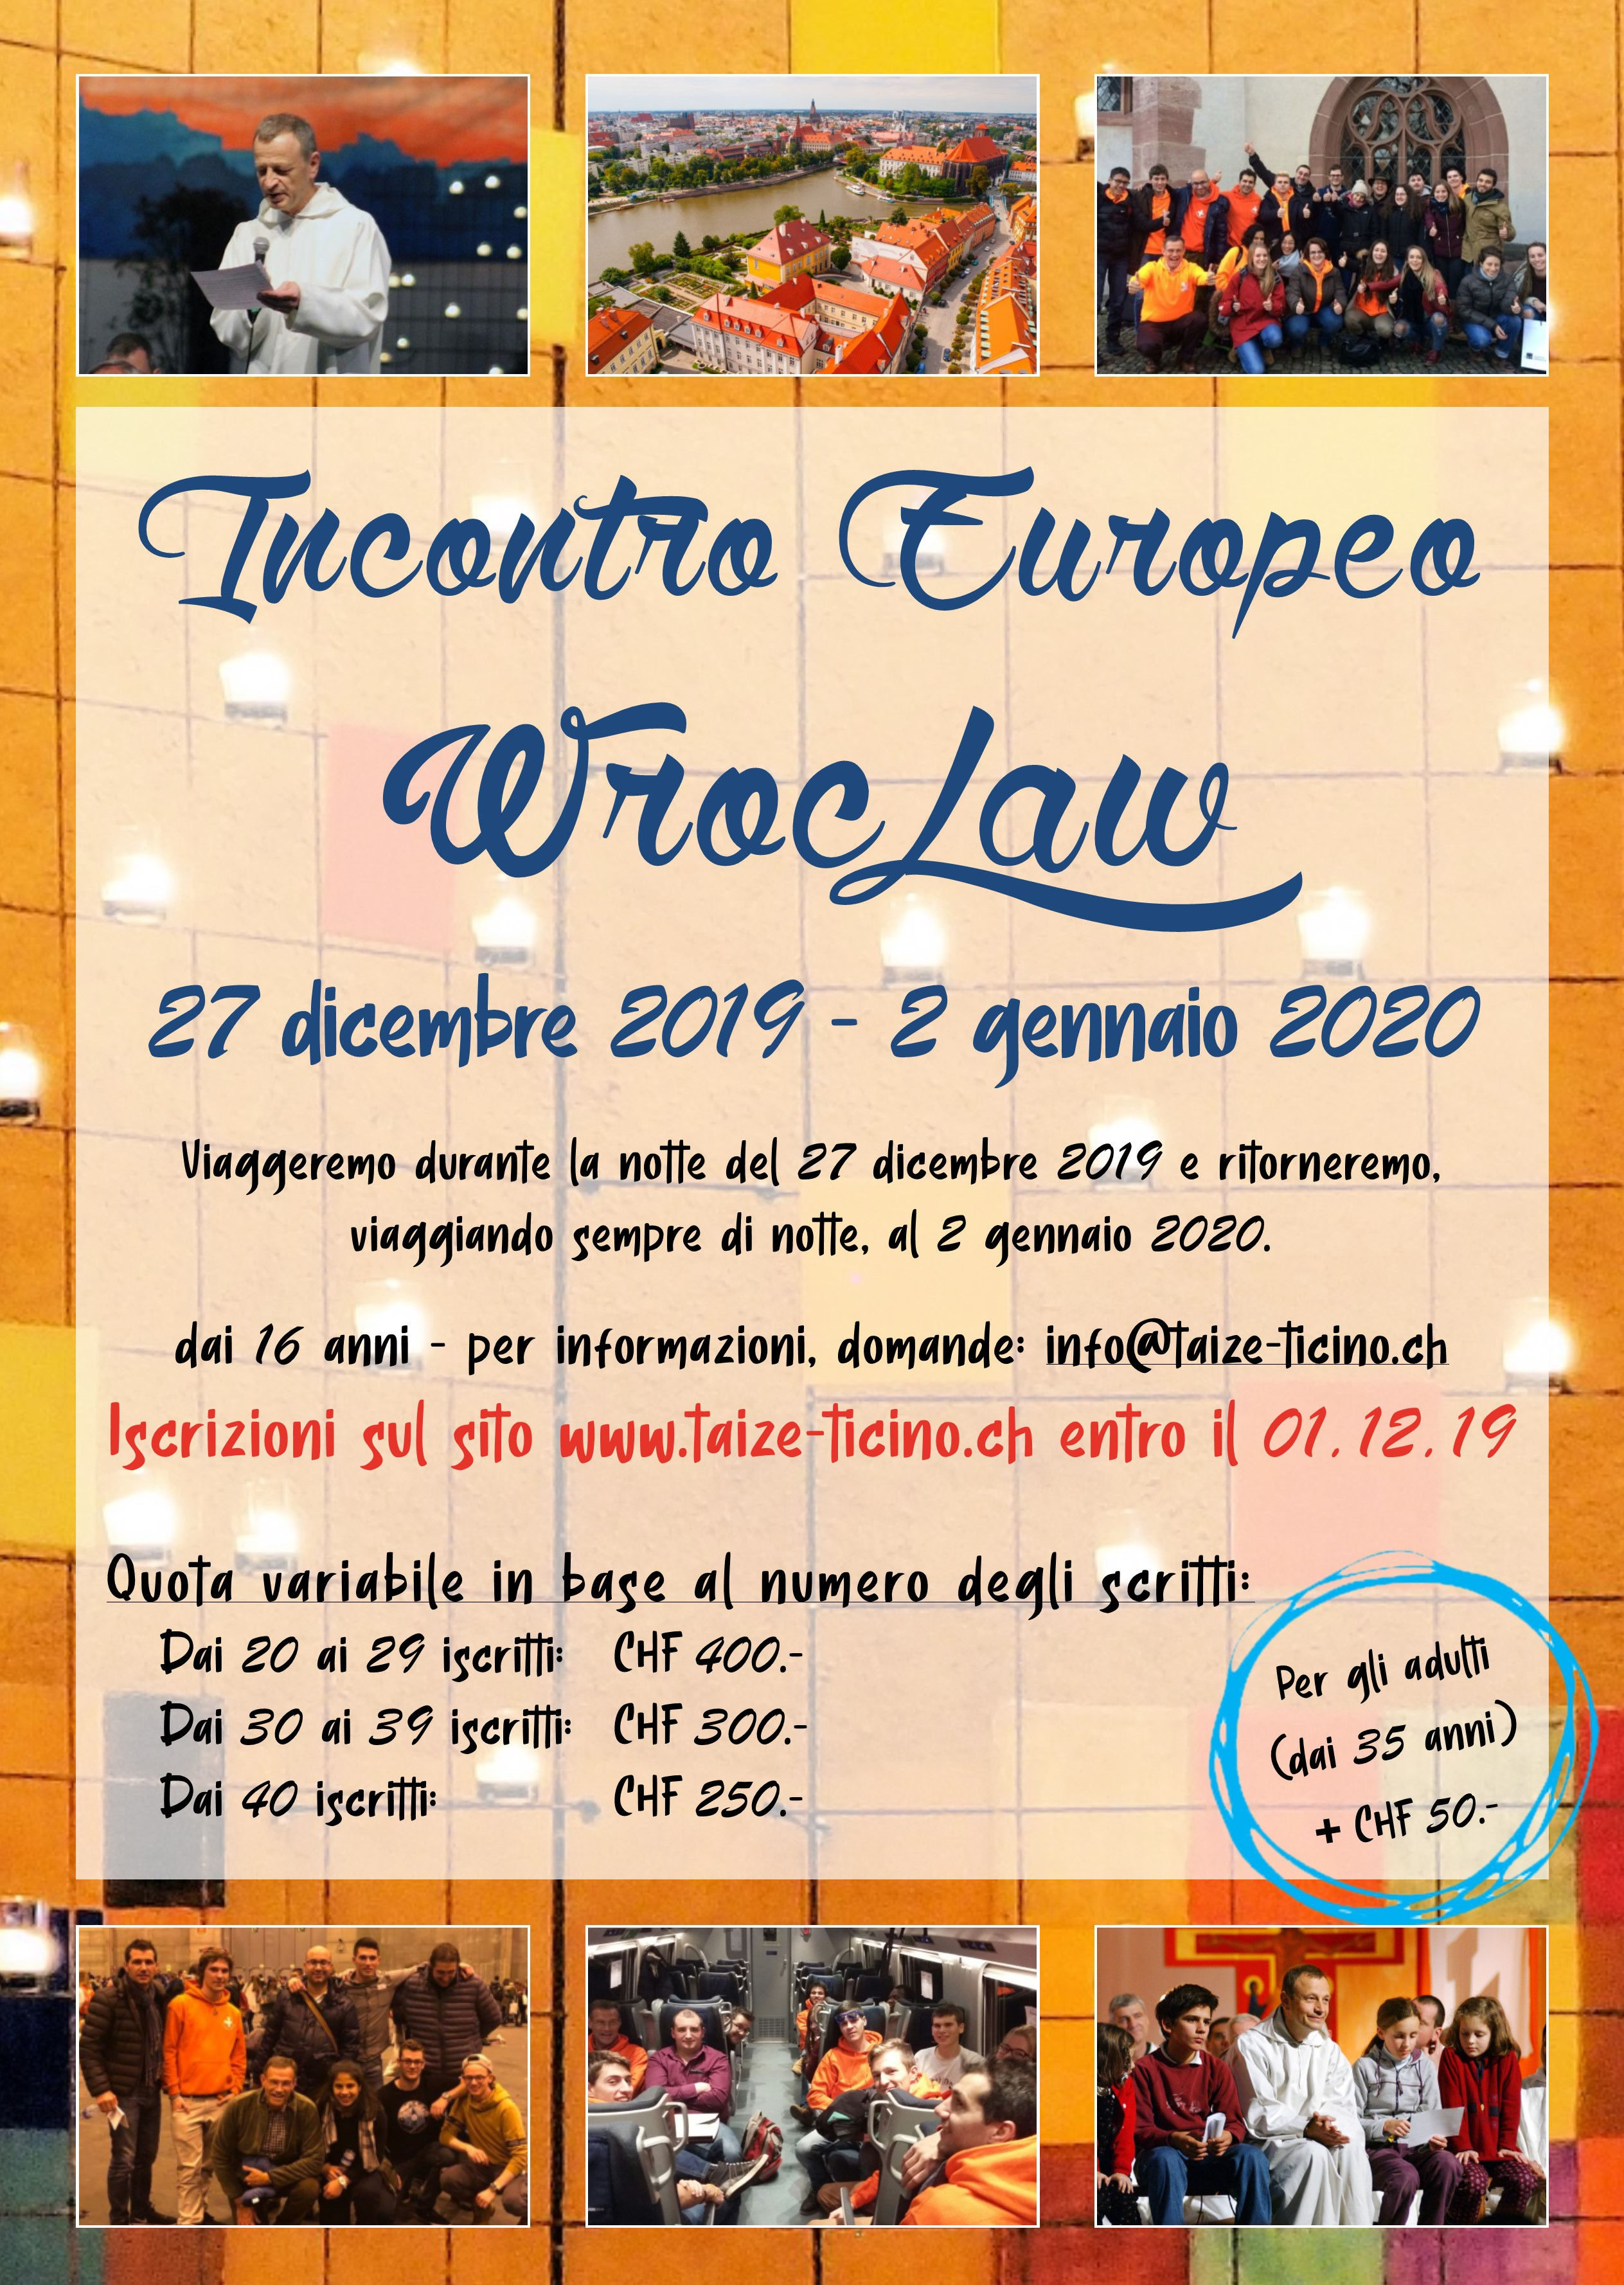 Incontro Europeo - Wroclaw 2019